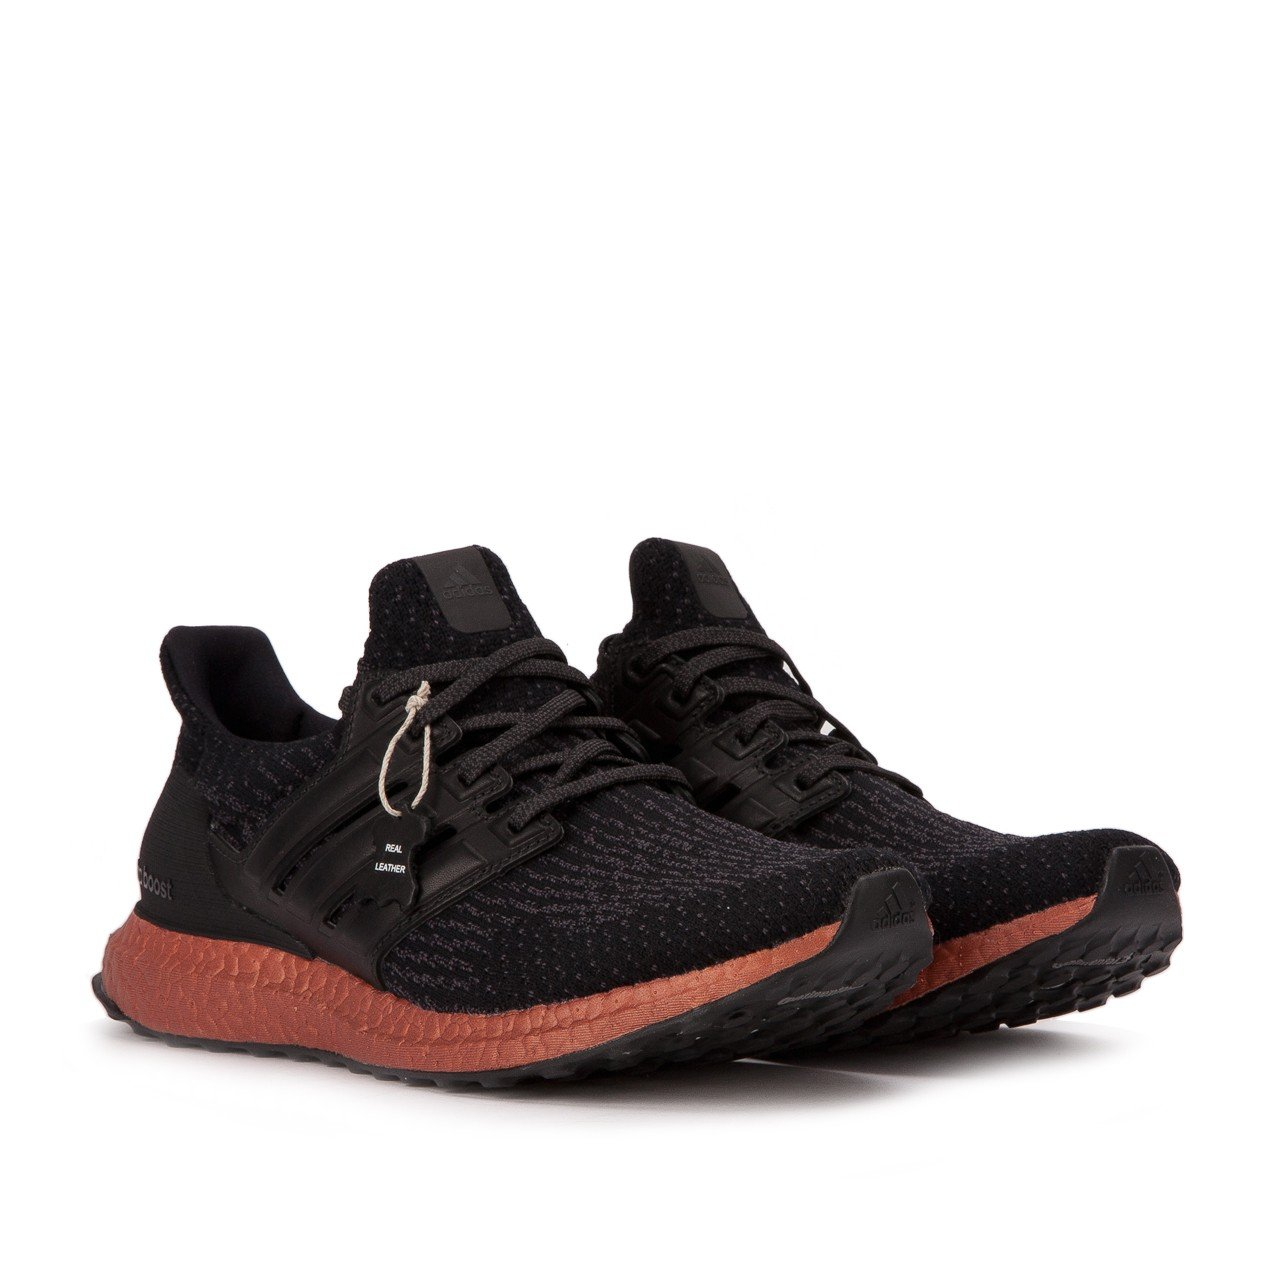 adidas Performance Men's Ultra Boost M Running Shoe B01N0T61EN 13 D(M) US|Black/Black/Tech Rust